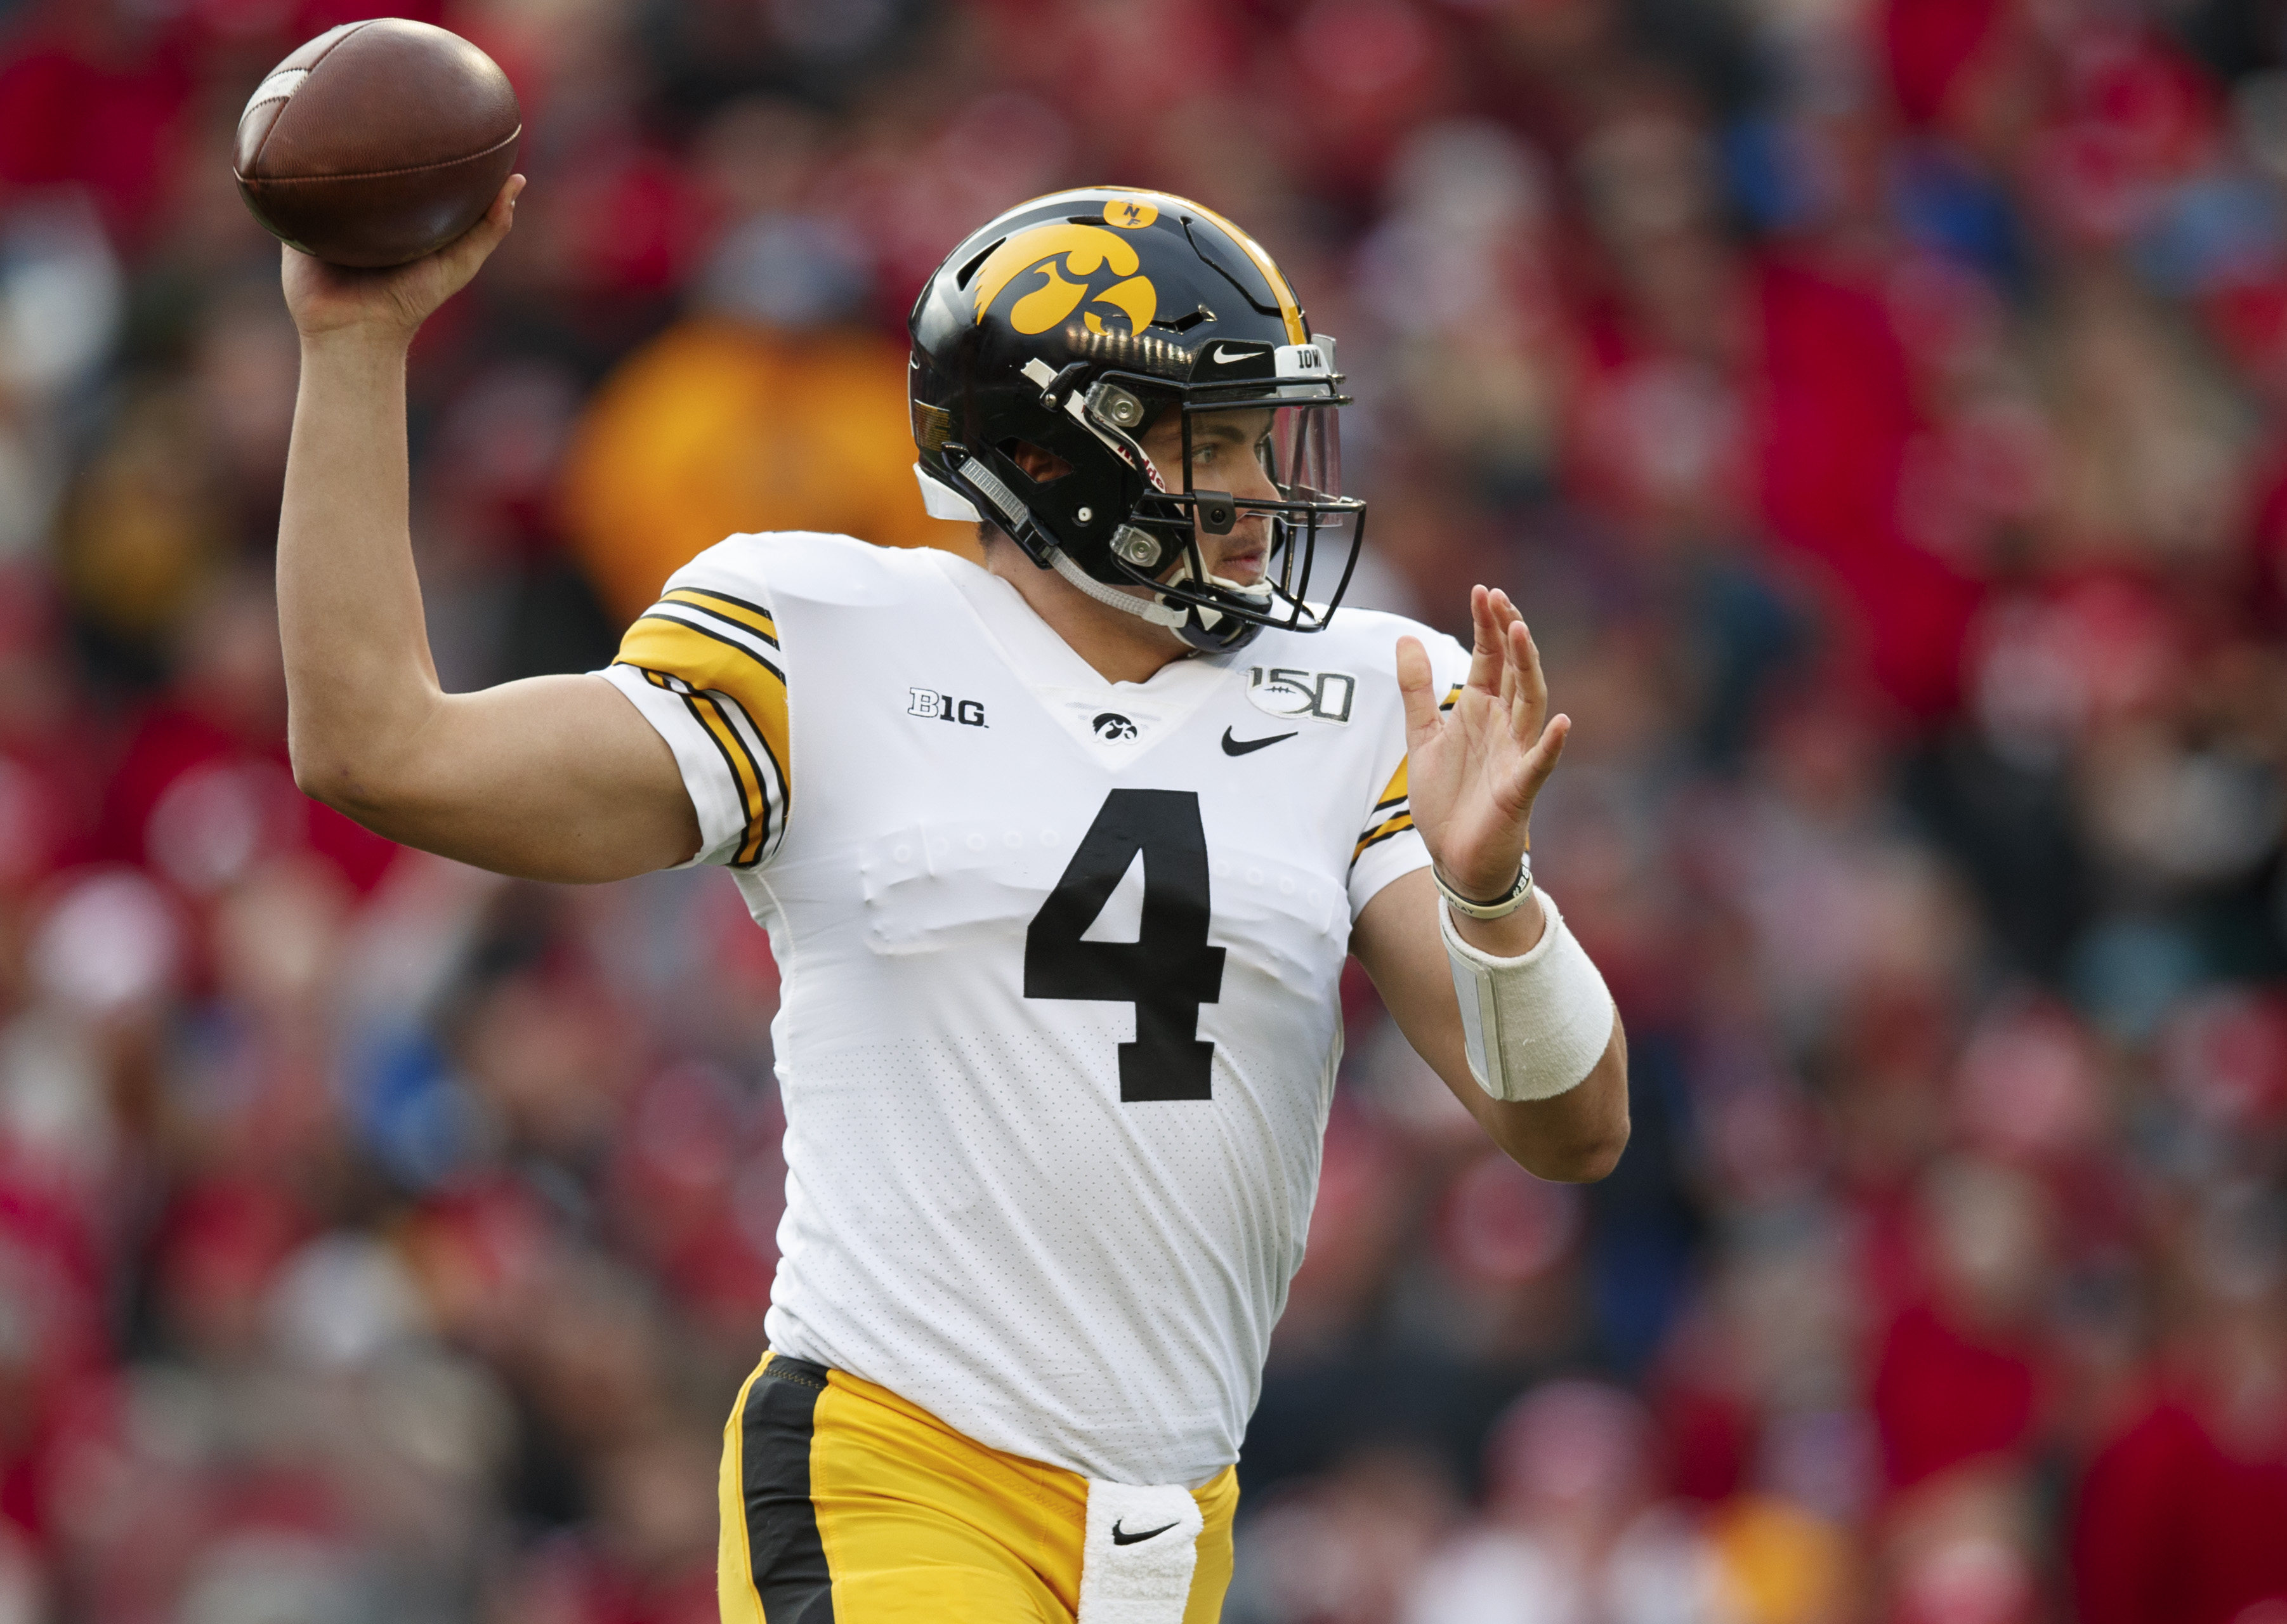 Iowa Hawkeyes destroy Minnesota Golden Gophers perfect season